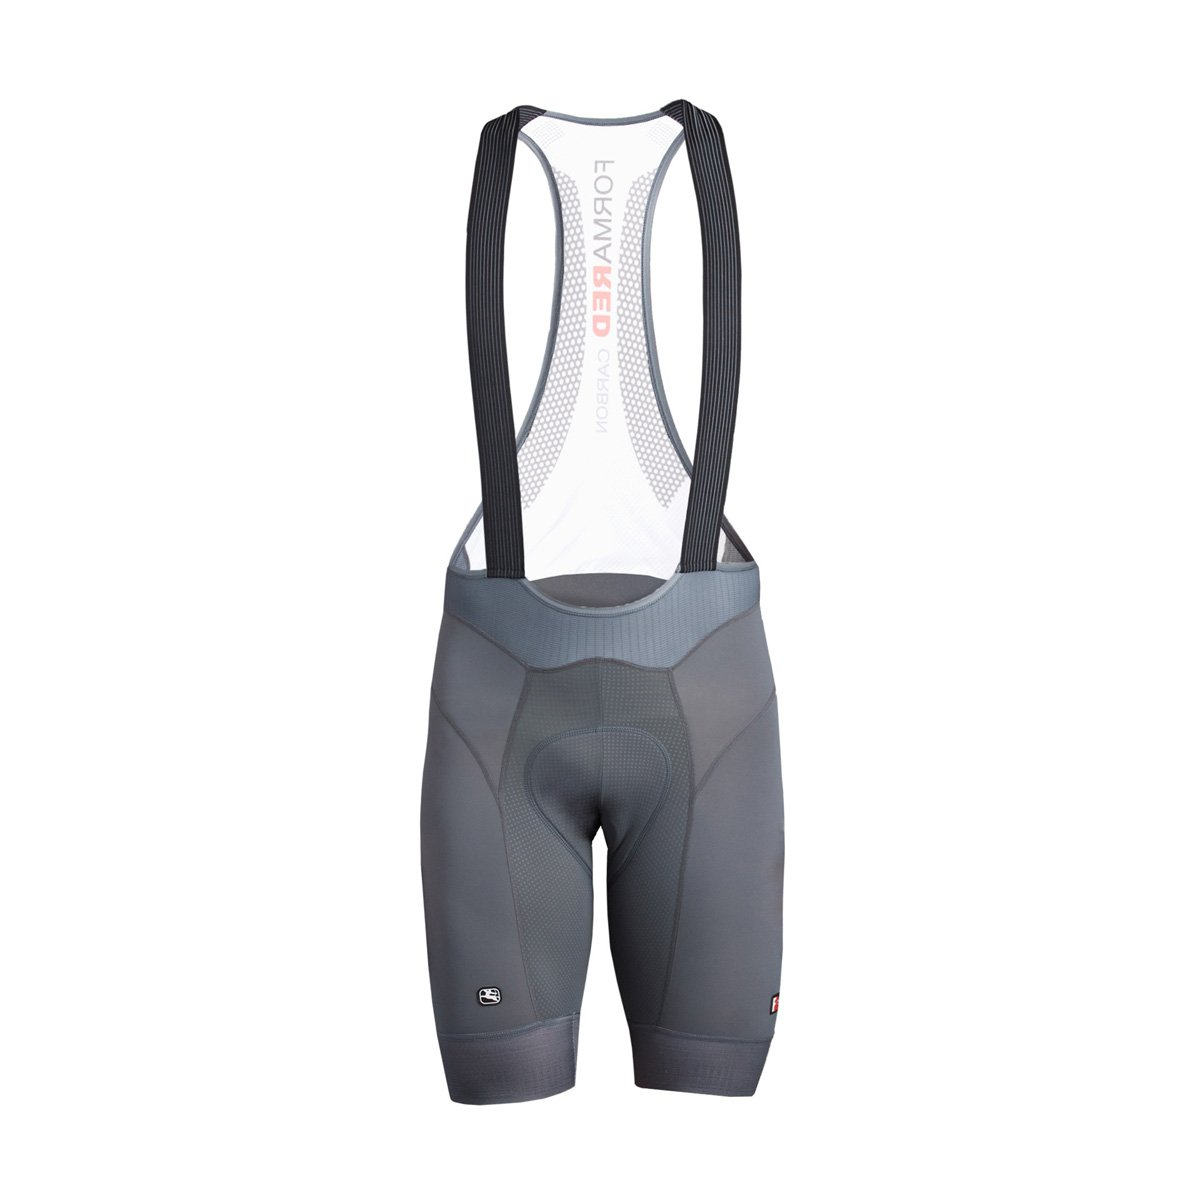 Giordana fr-c Pro Bib Short – Men 's B077GV1FMC Medium|グレー グレー Medium